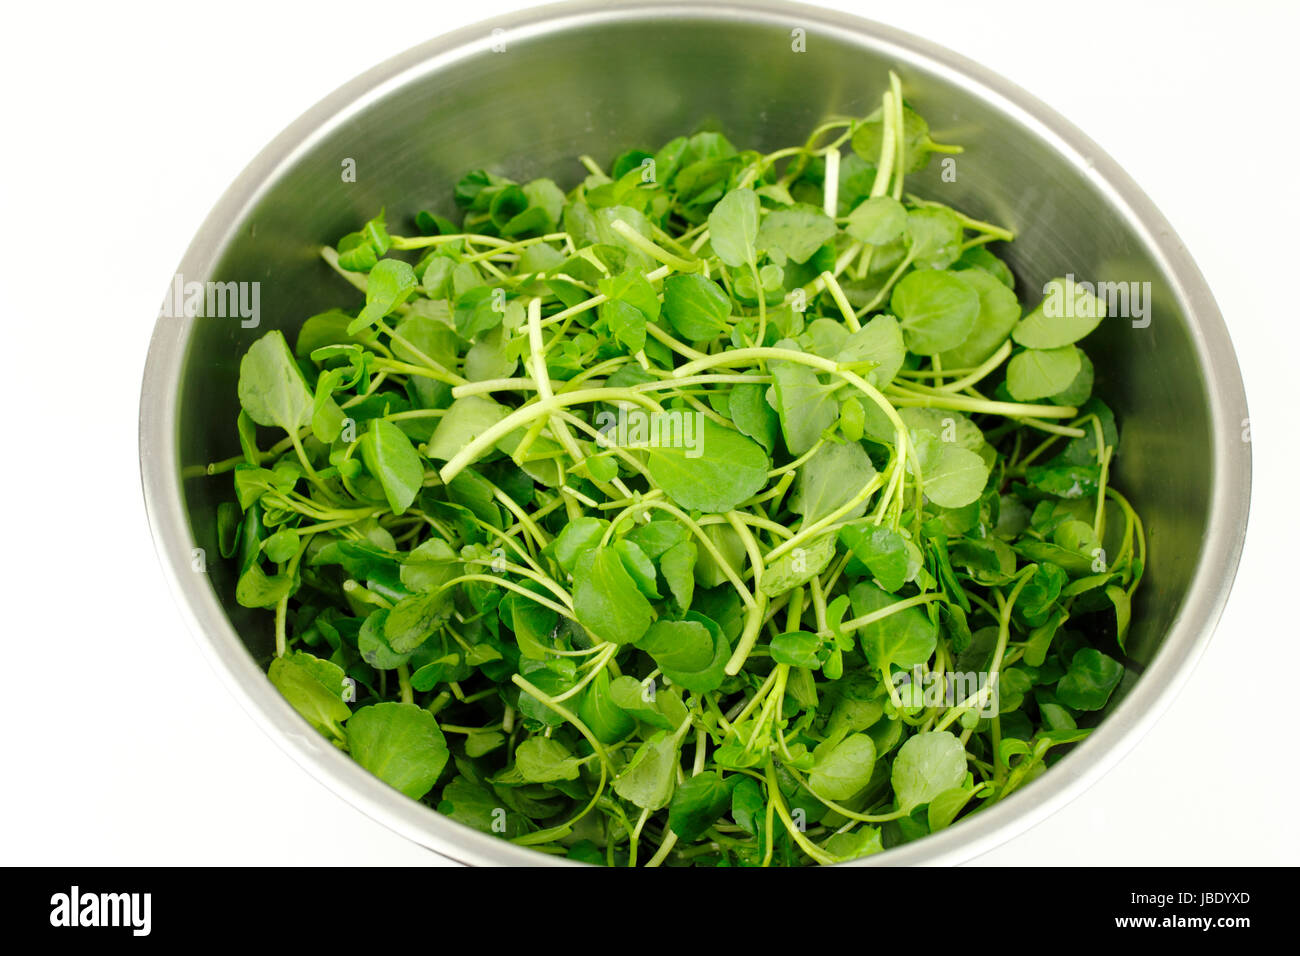 Close up of stainless steel bowl on white with small green watercress leaf vegetables used in salads and as a garnish - Stock Image